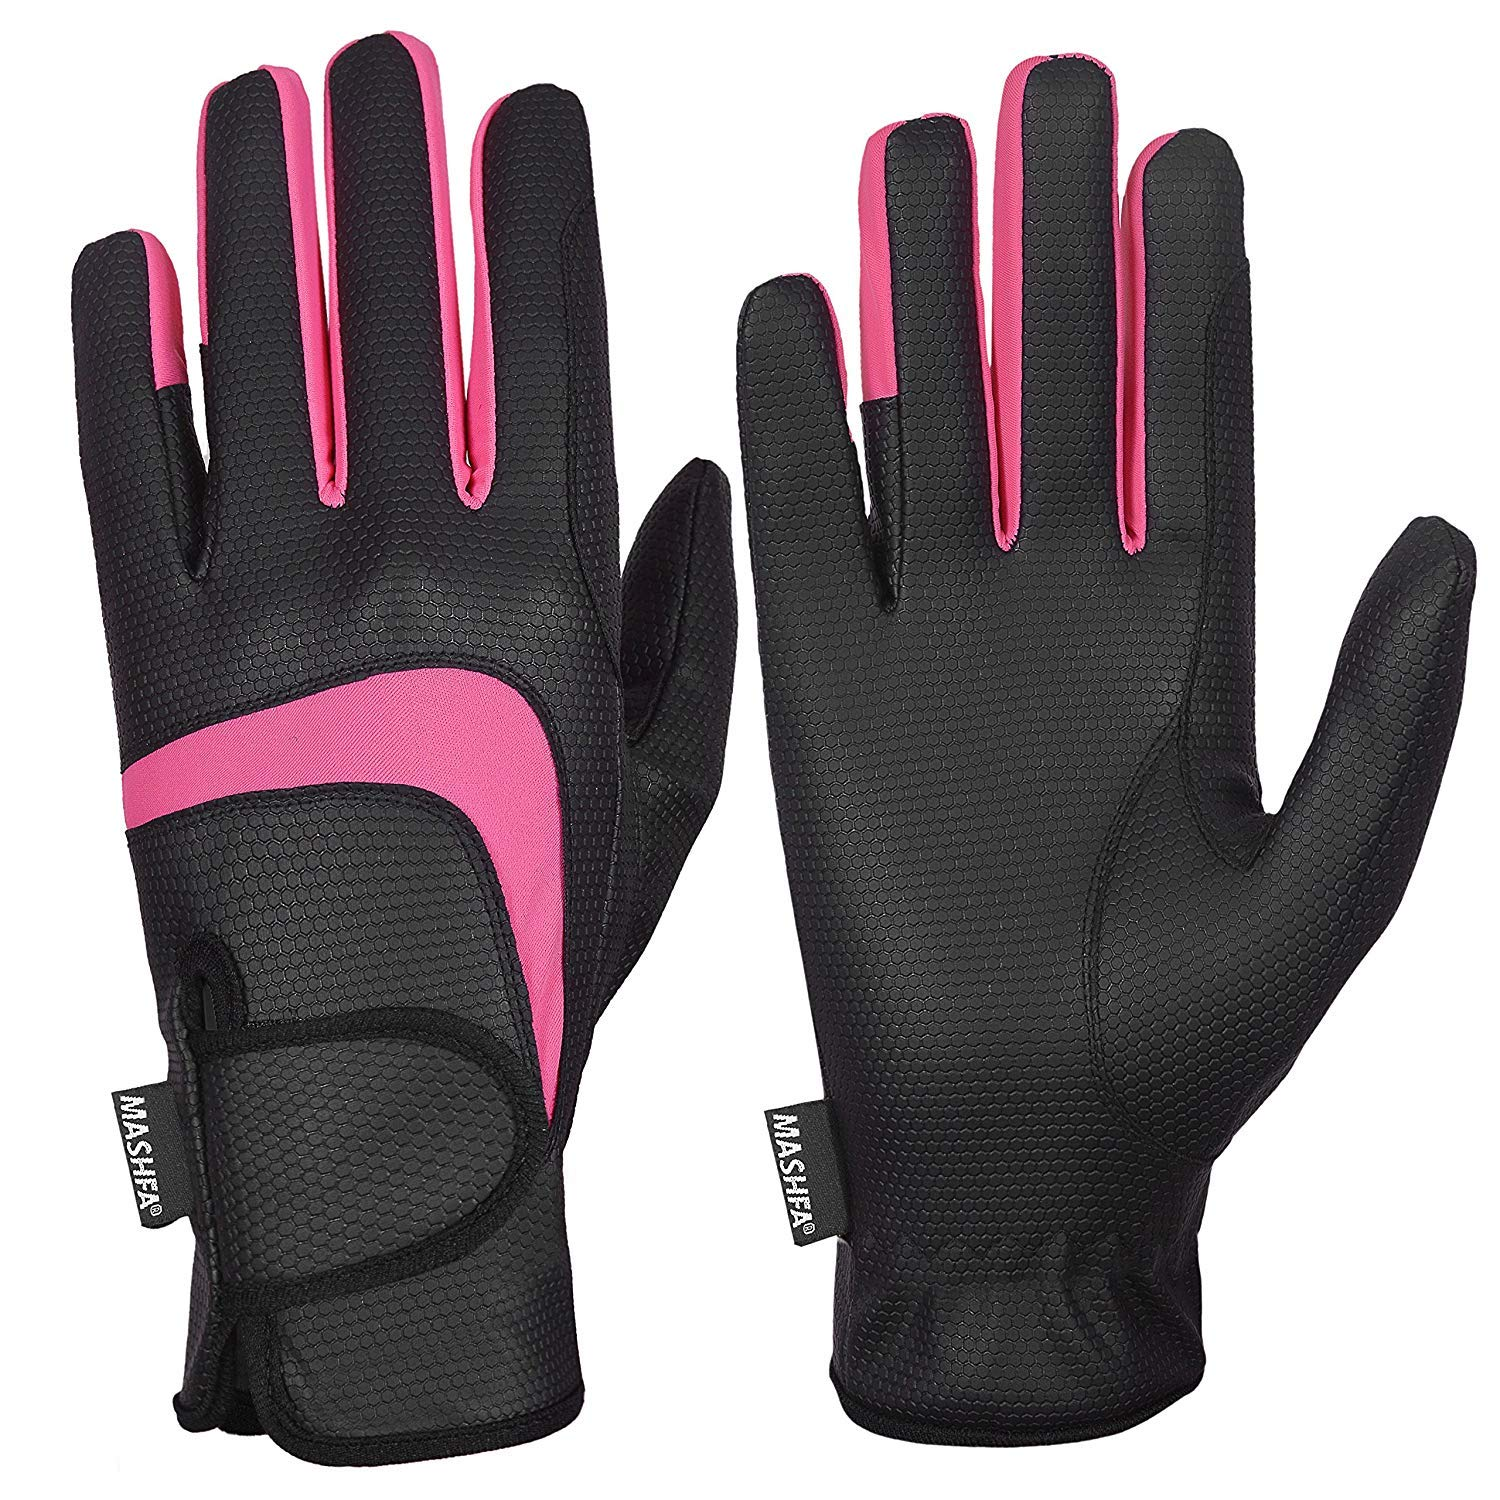 MASHFA Ladies Horse Riding Gloves Women Equestrian Horseback Outdoor Breathable Stretchable Riding Gloves 1 Year Warranty!!